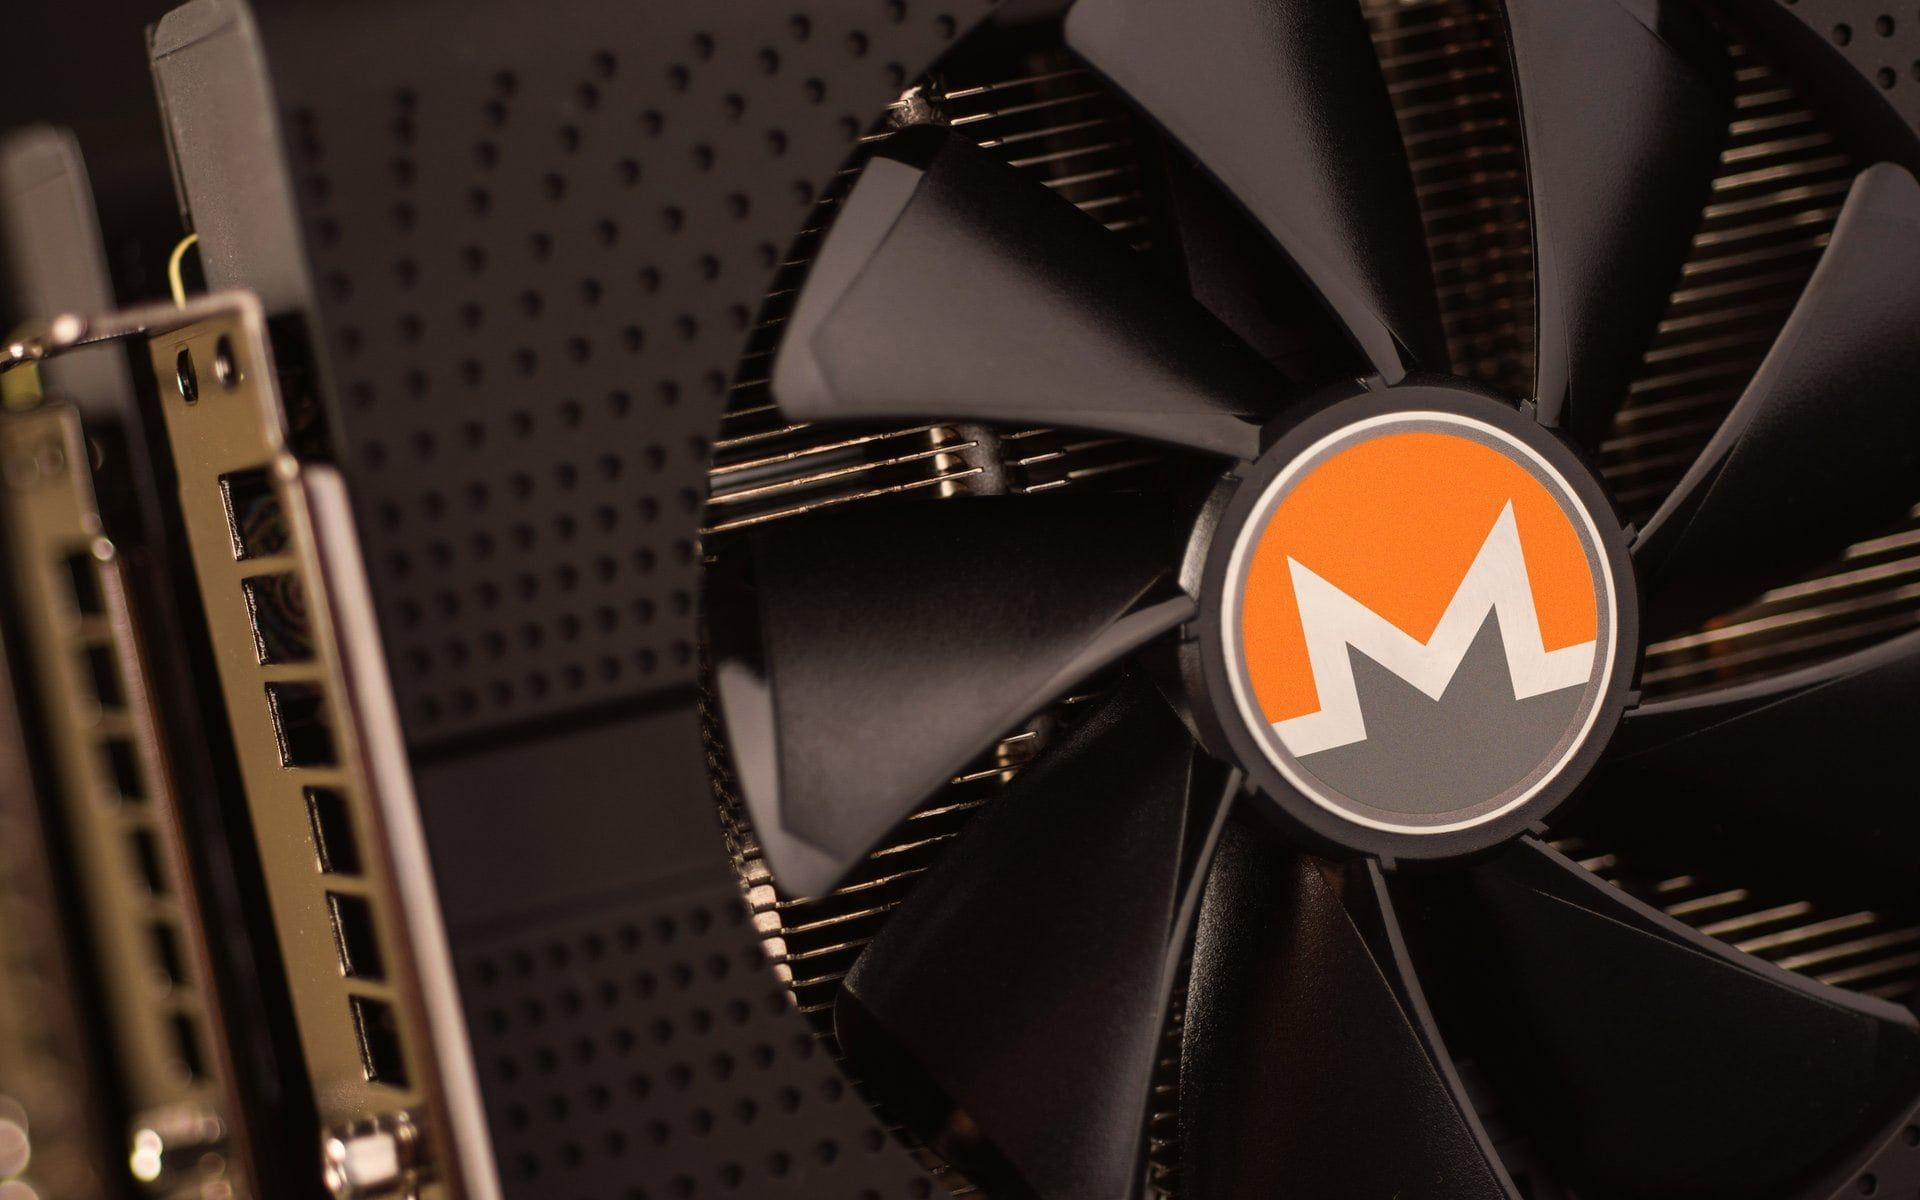 ss apple android monero mining malware - Monero (XMR) Was Hit By Hackers - Mining Malware Attack Makes Over 200,000 Victims